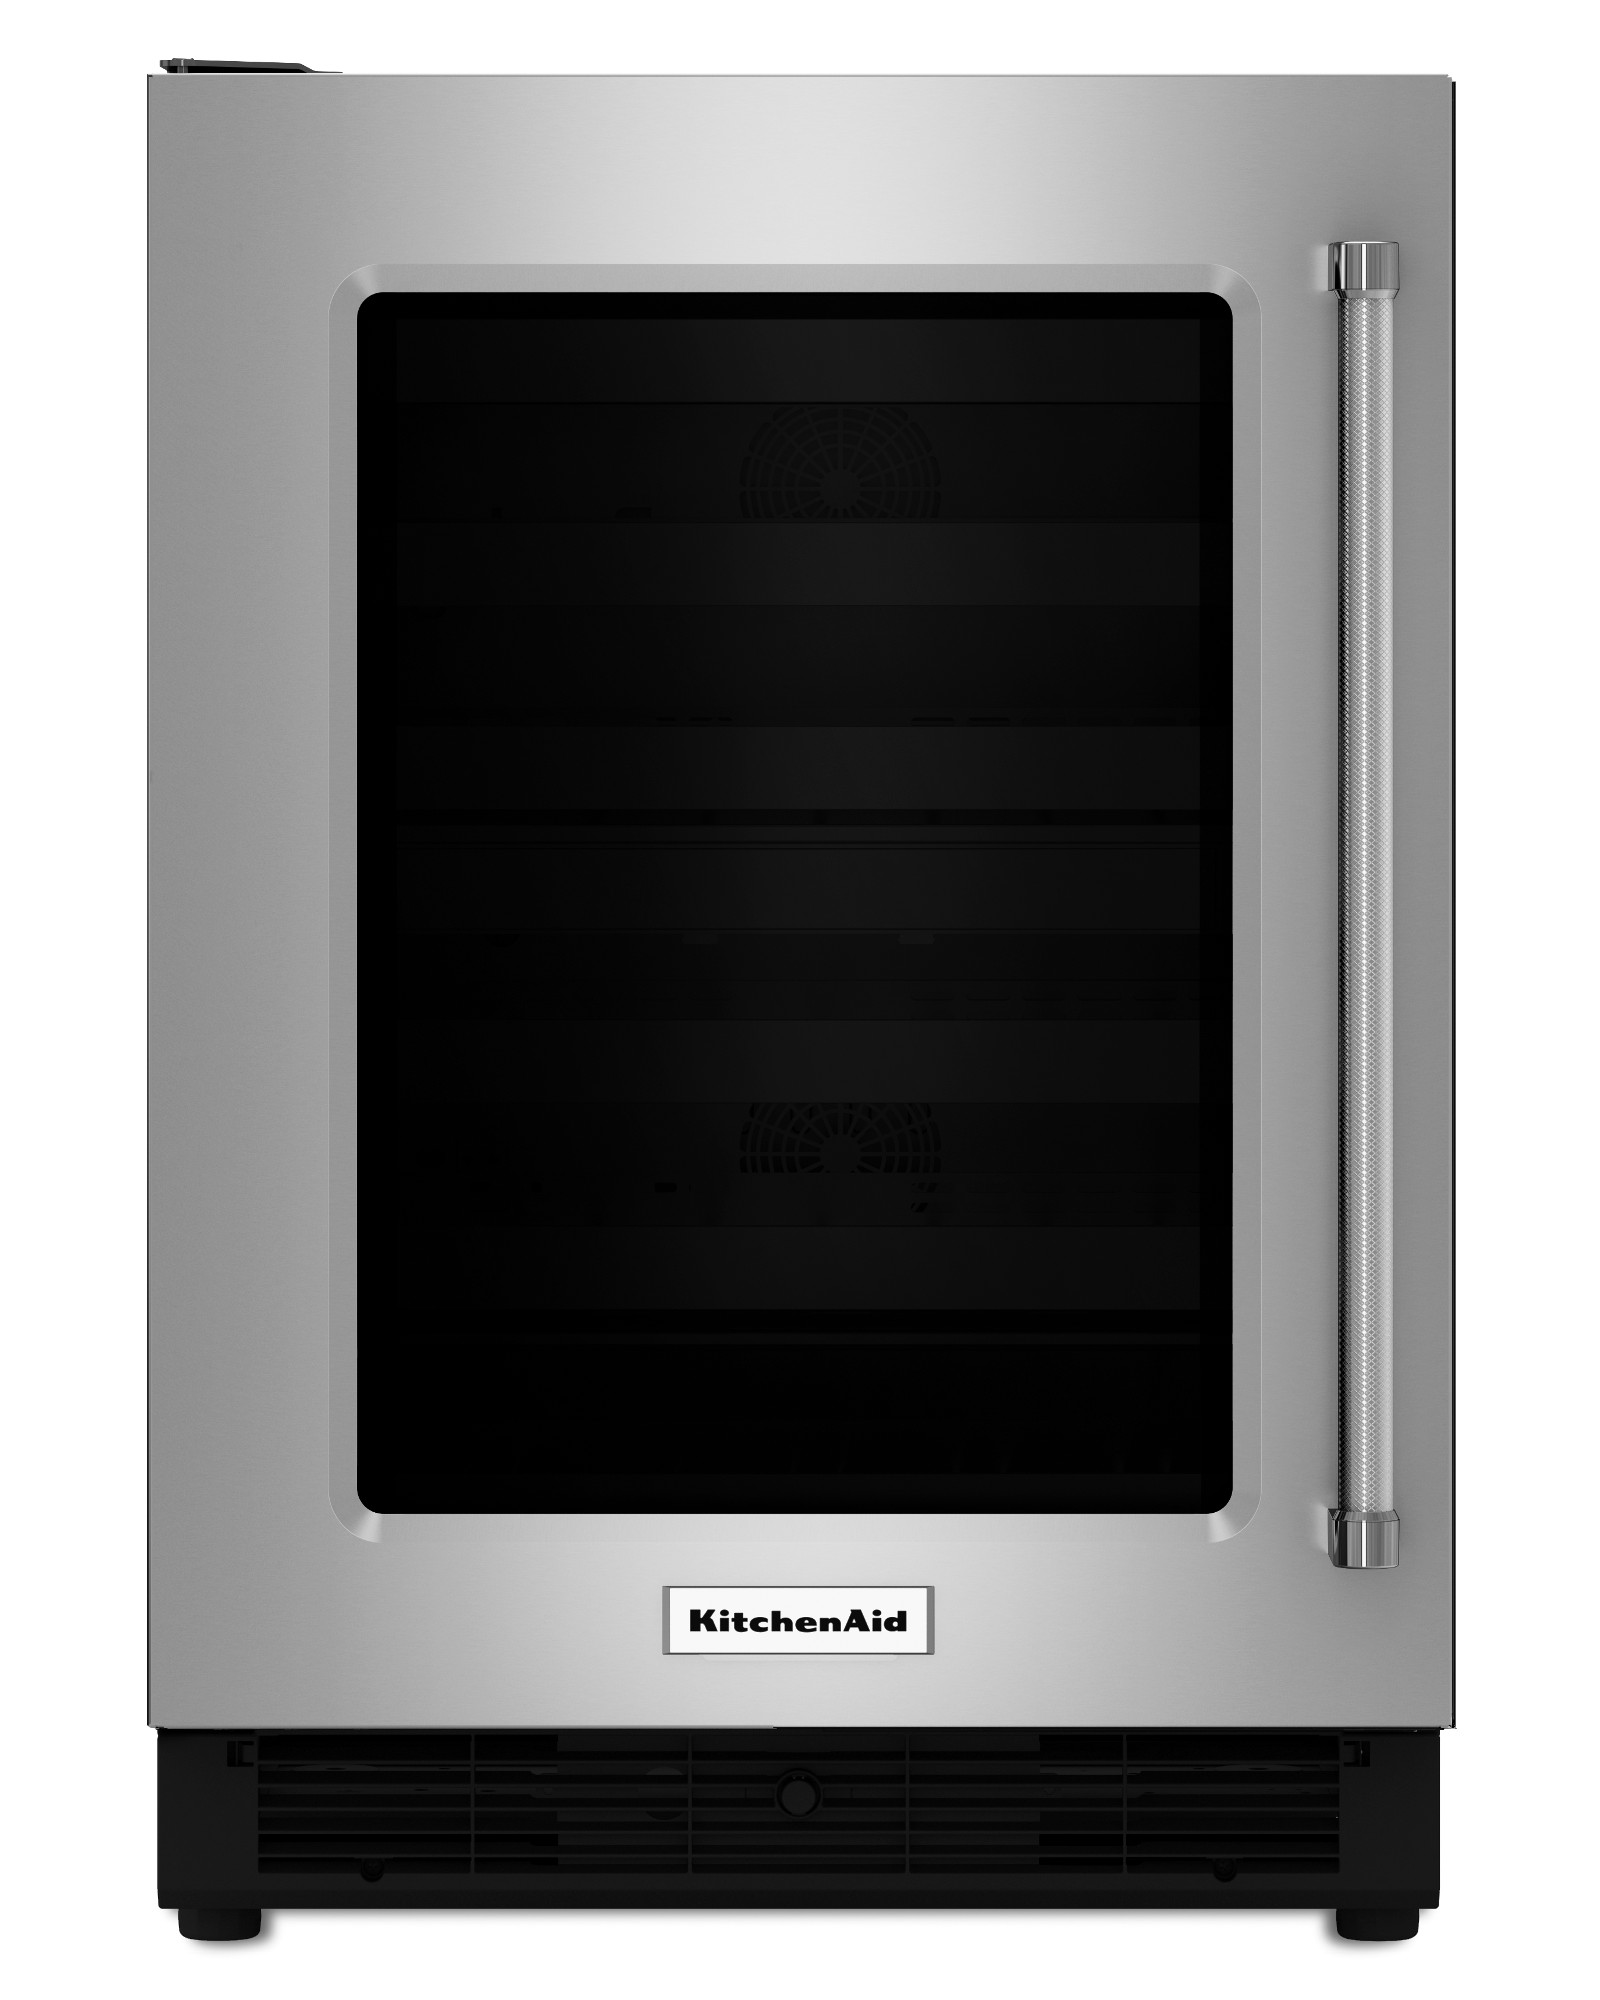 KitchenAid KURL204ESB 5.1 cu. ft. Left Swing Undercounter Refrigerator w/ Glass Door - Stainless Steel